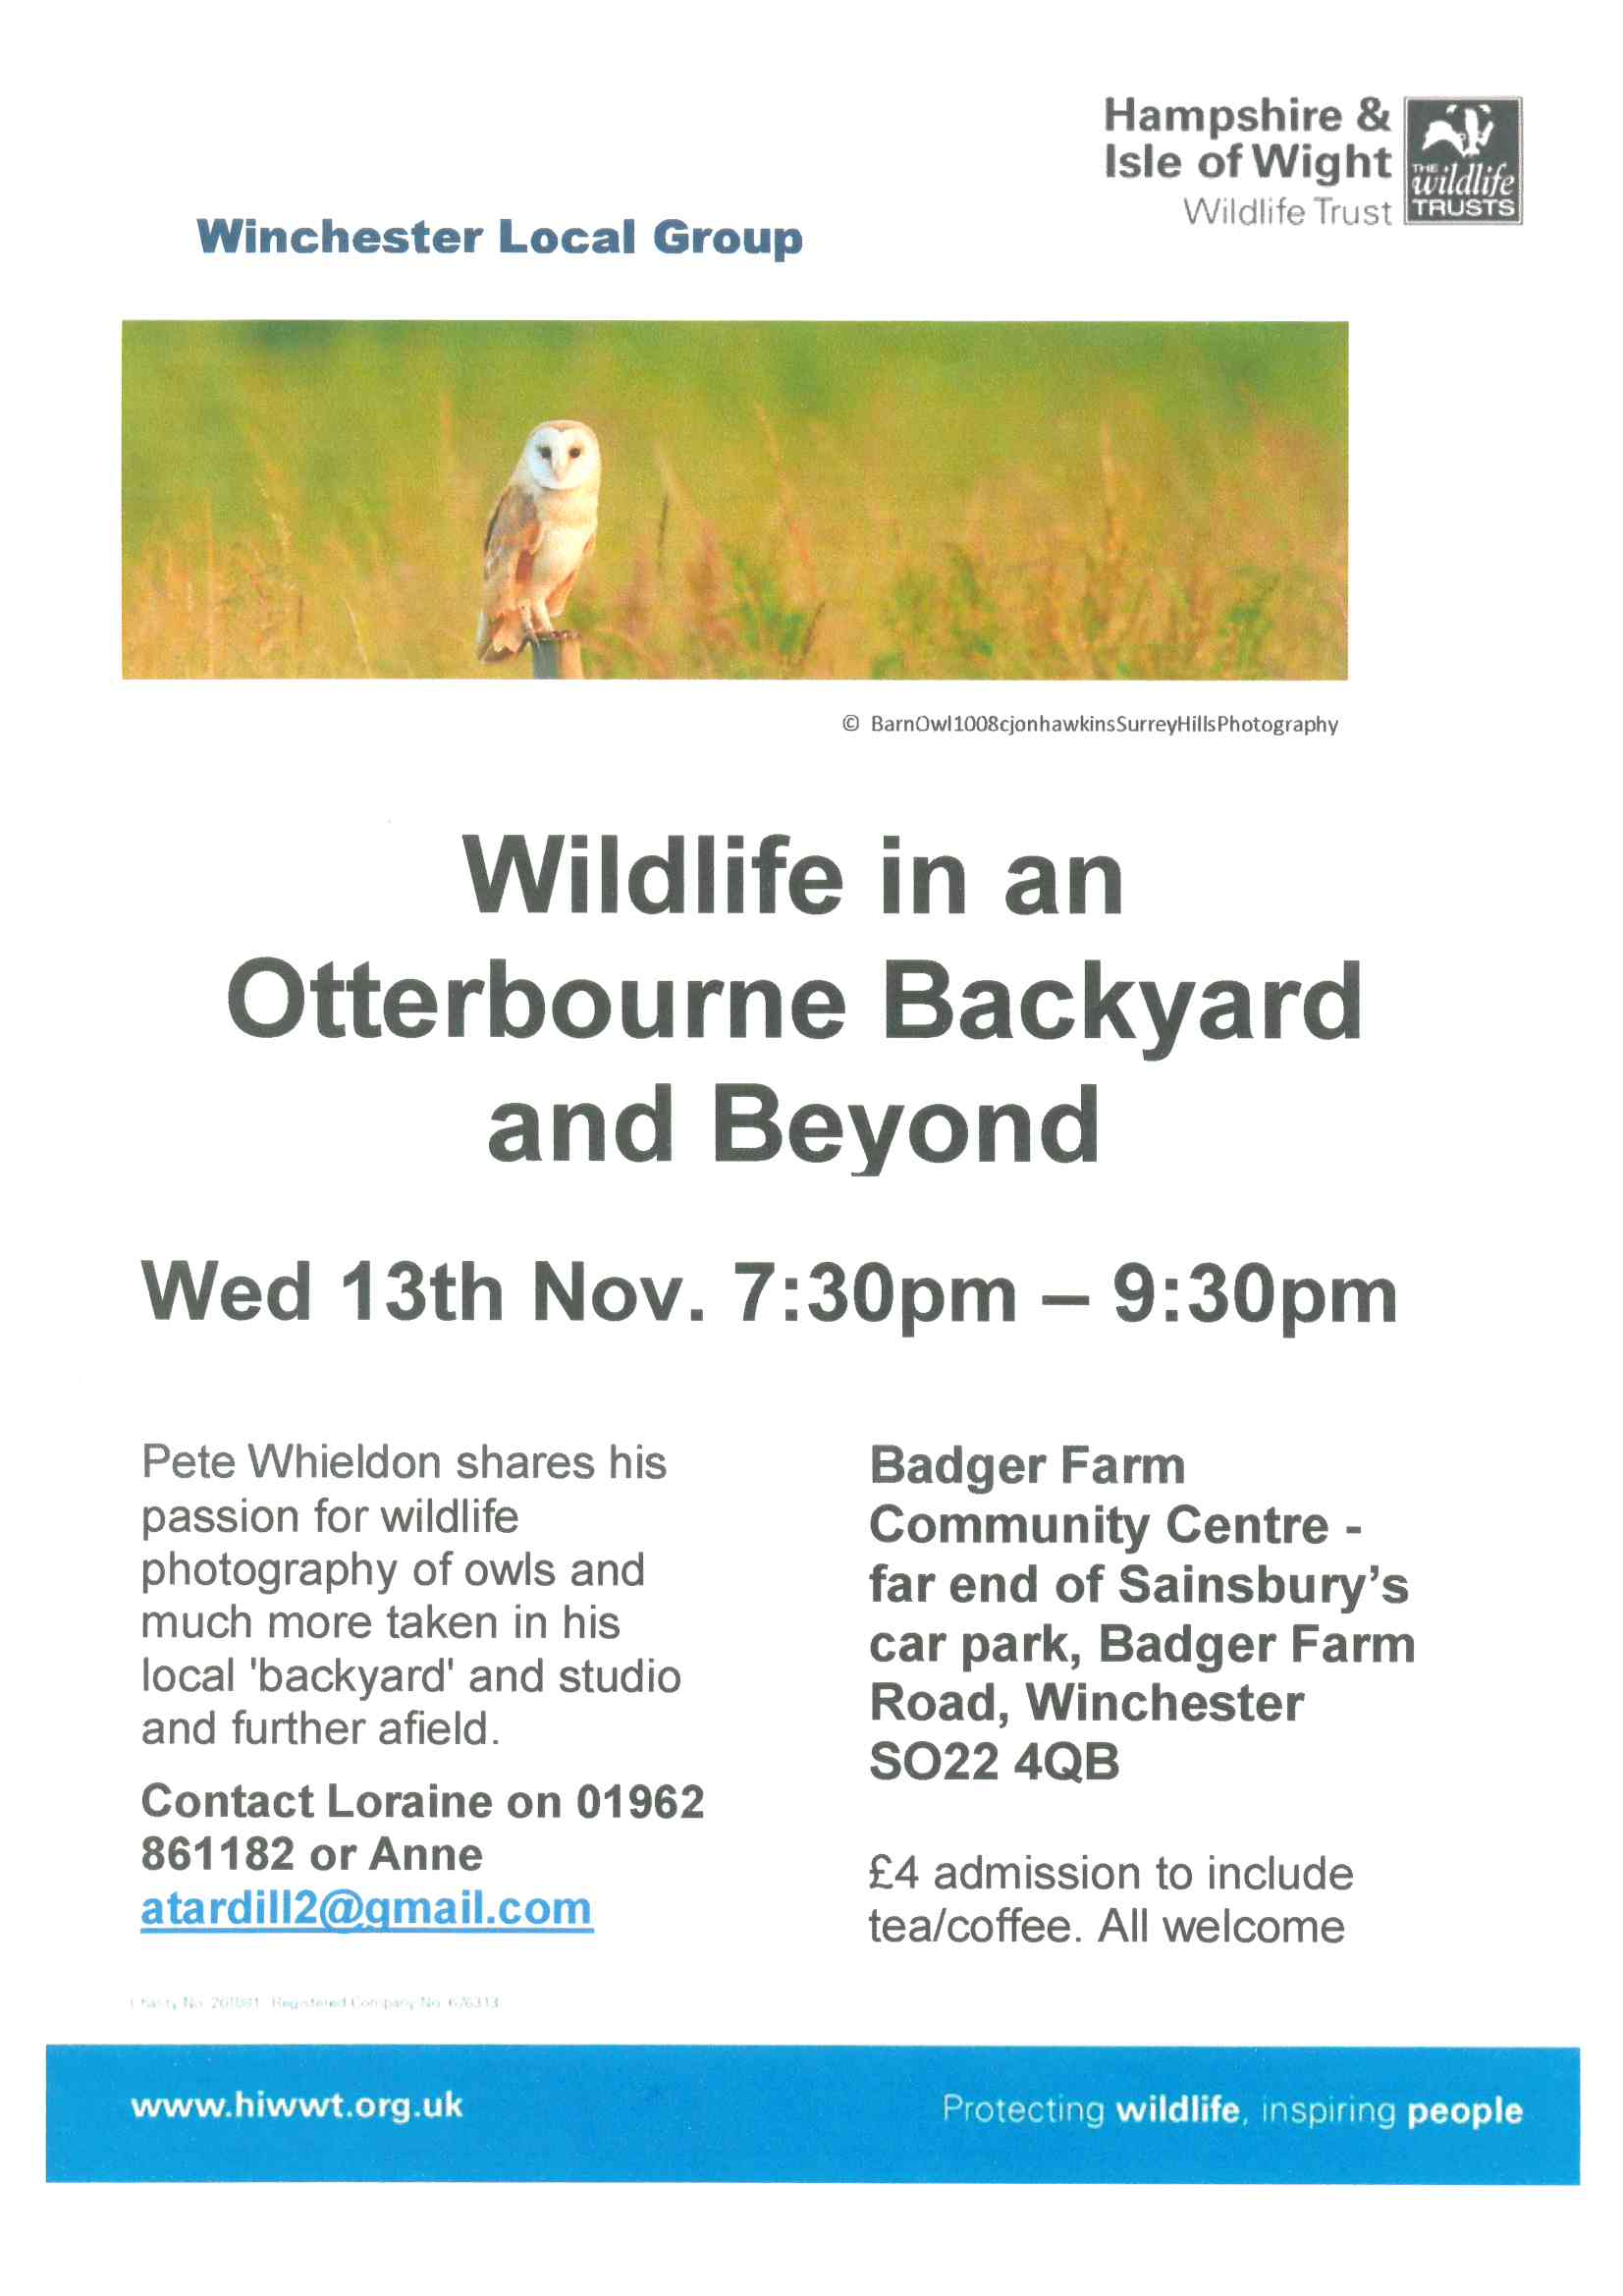 A talk on Wildlife in an Otterbourne Backyard and beyond. Picture of a bsrn owl.